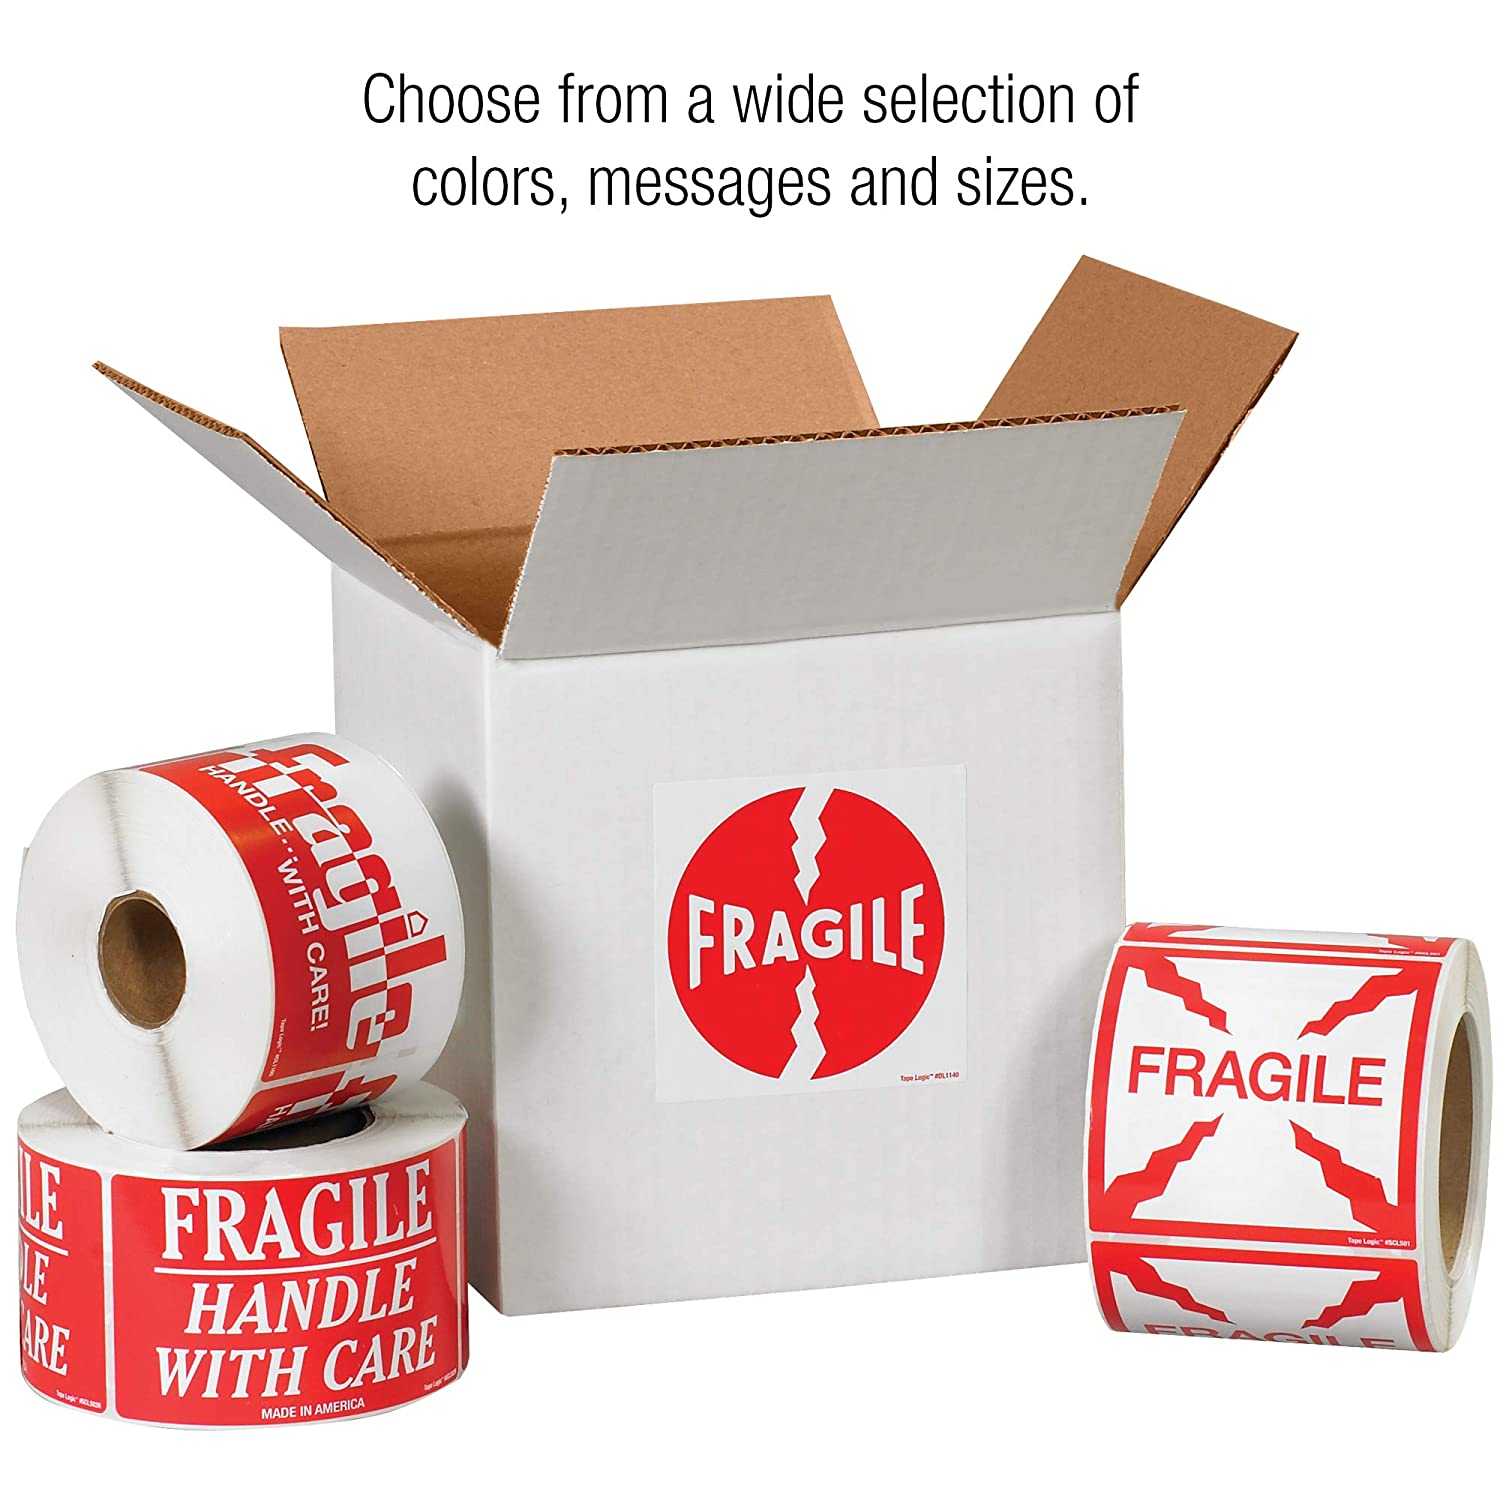 Red//White Thank You with Stars 3 x 5 Handle with Care Tape Logic TLSCL536 Labels,Fragile 1 Roll of 500 Labels